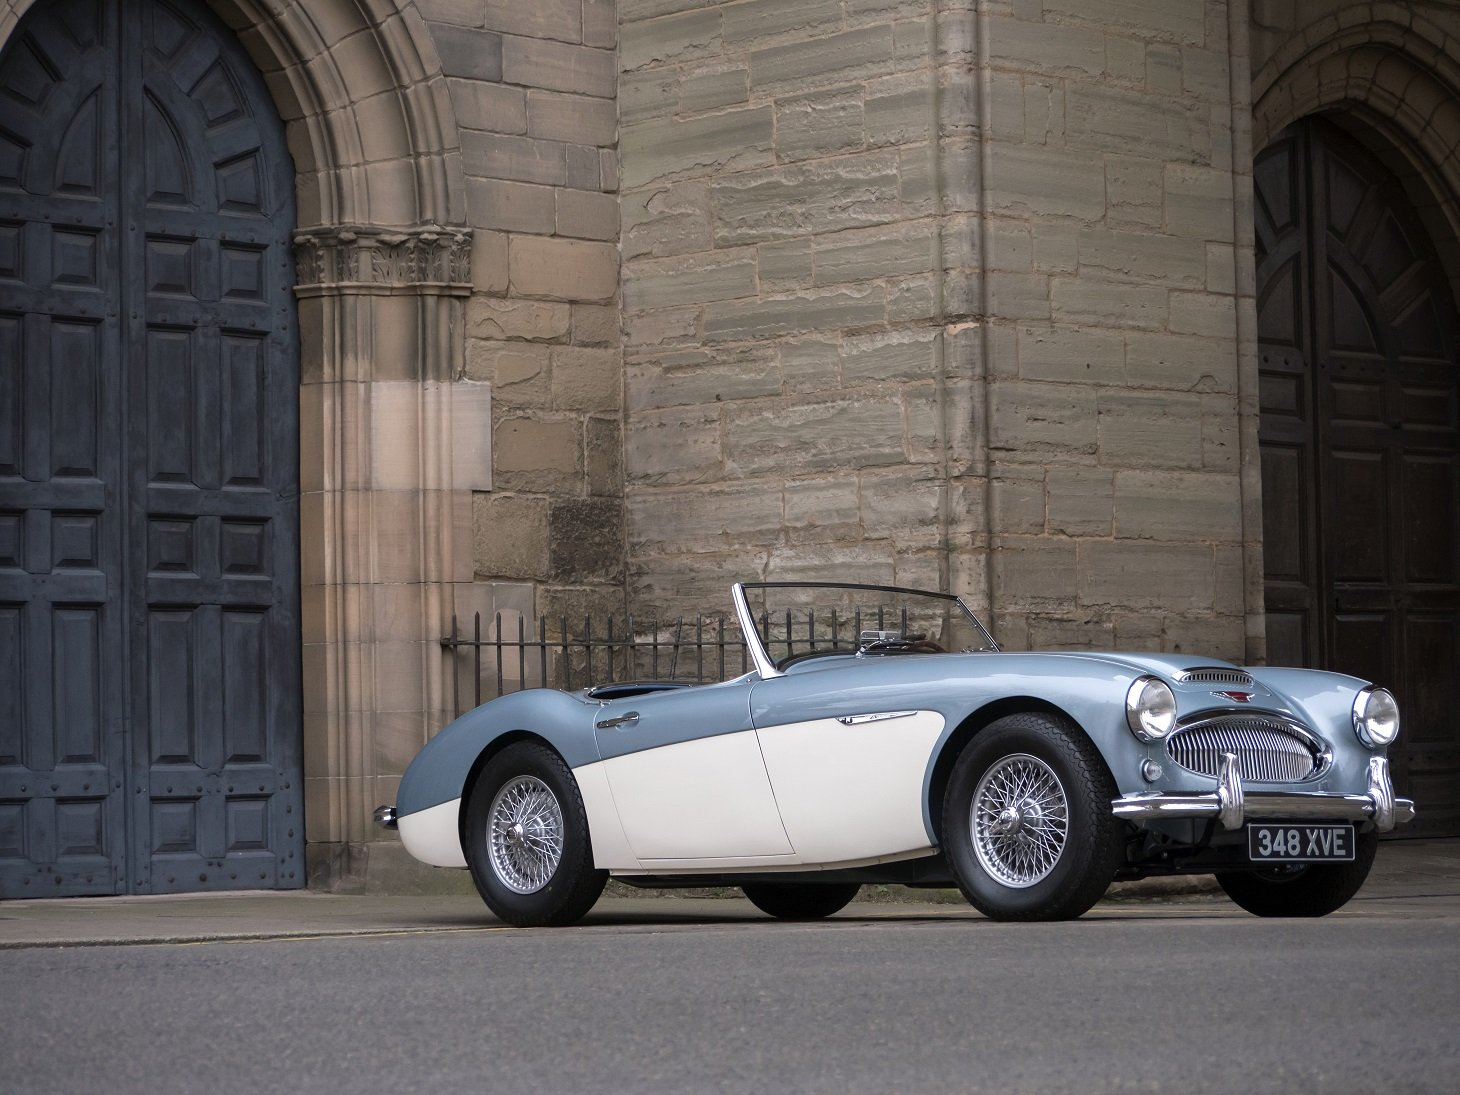 1961 Austin Healey 3000 MKII BN7 - 2 seater Tri-Carb  For Sale (picture 1 of 6)